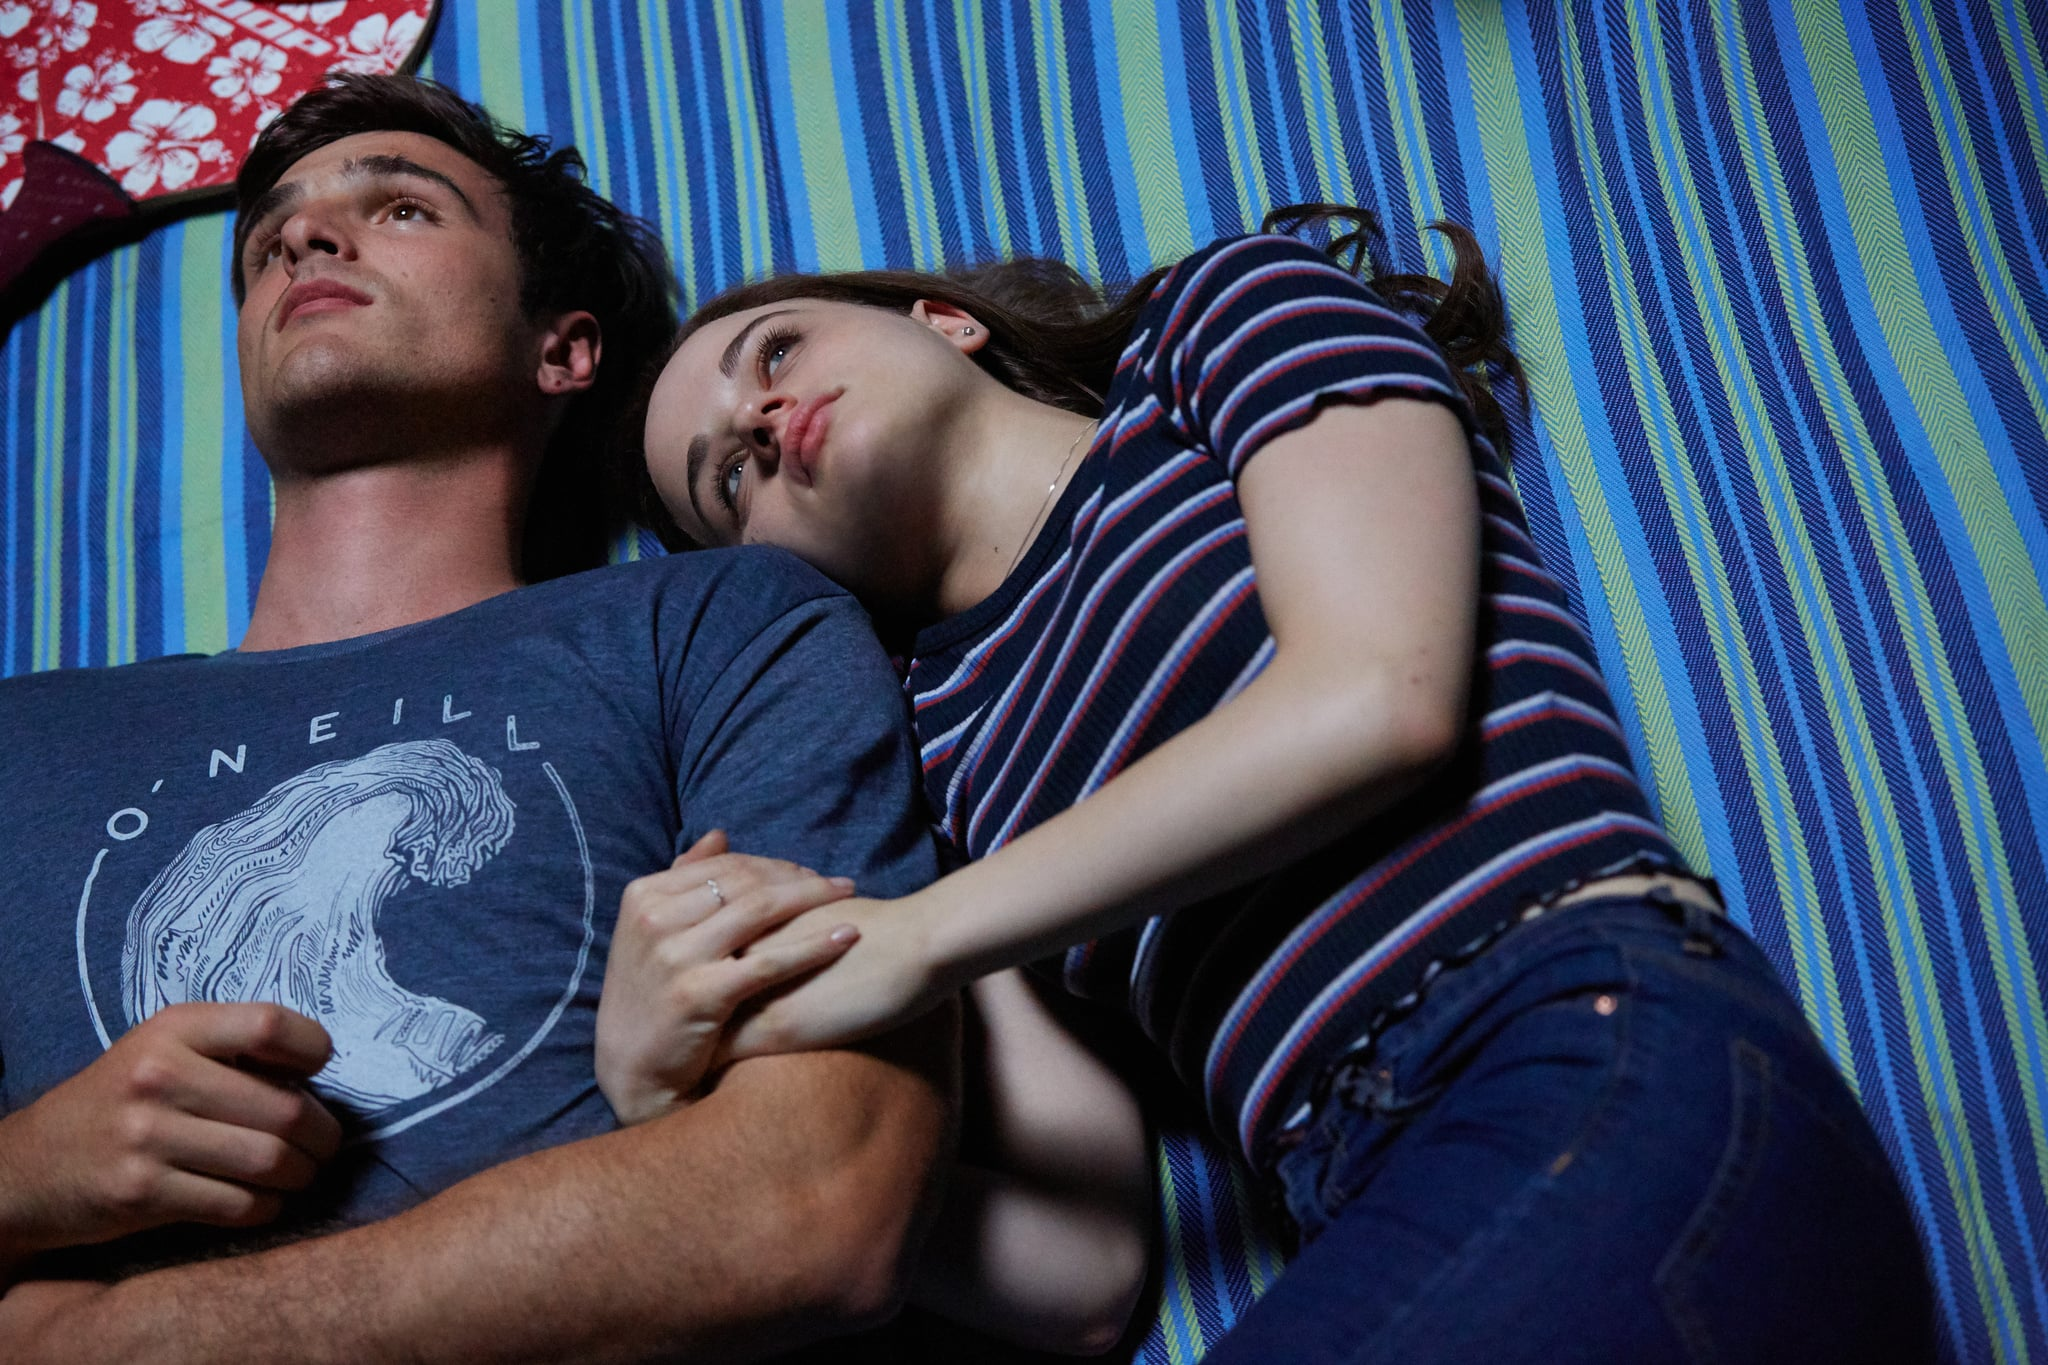 THE KISSING BOOTH 3 (2021) Jacob Elordi as Noah and Joey King as Elle.  Cr: Marcos Cruz/NETFLIX